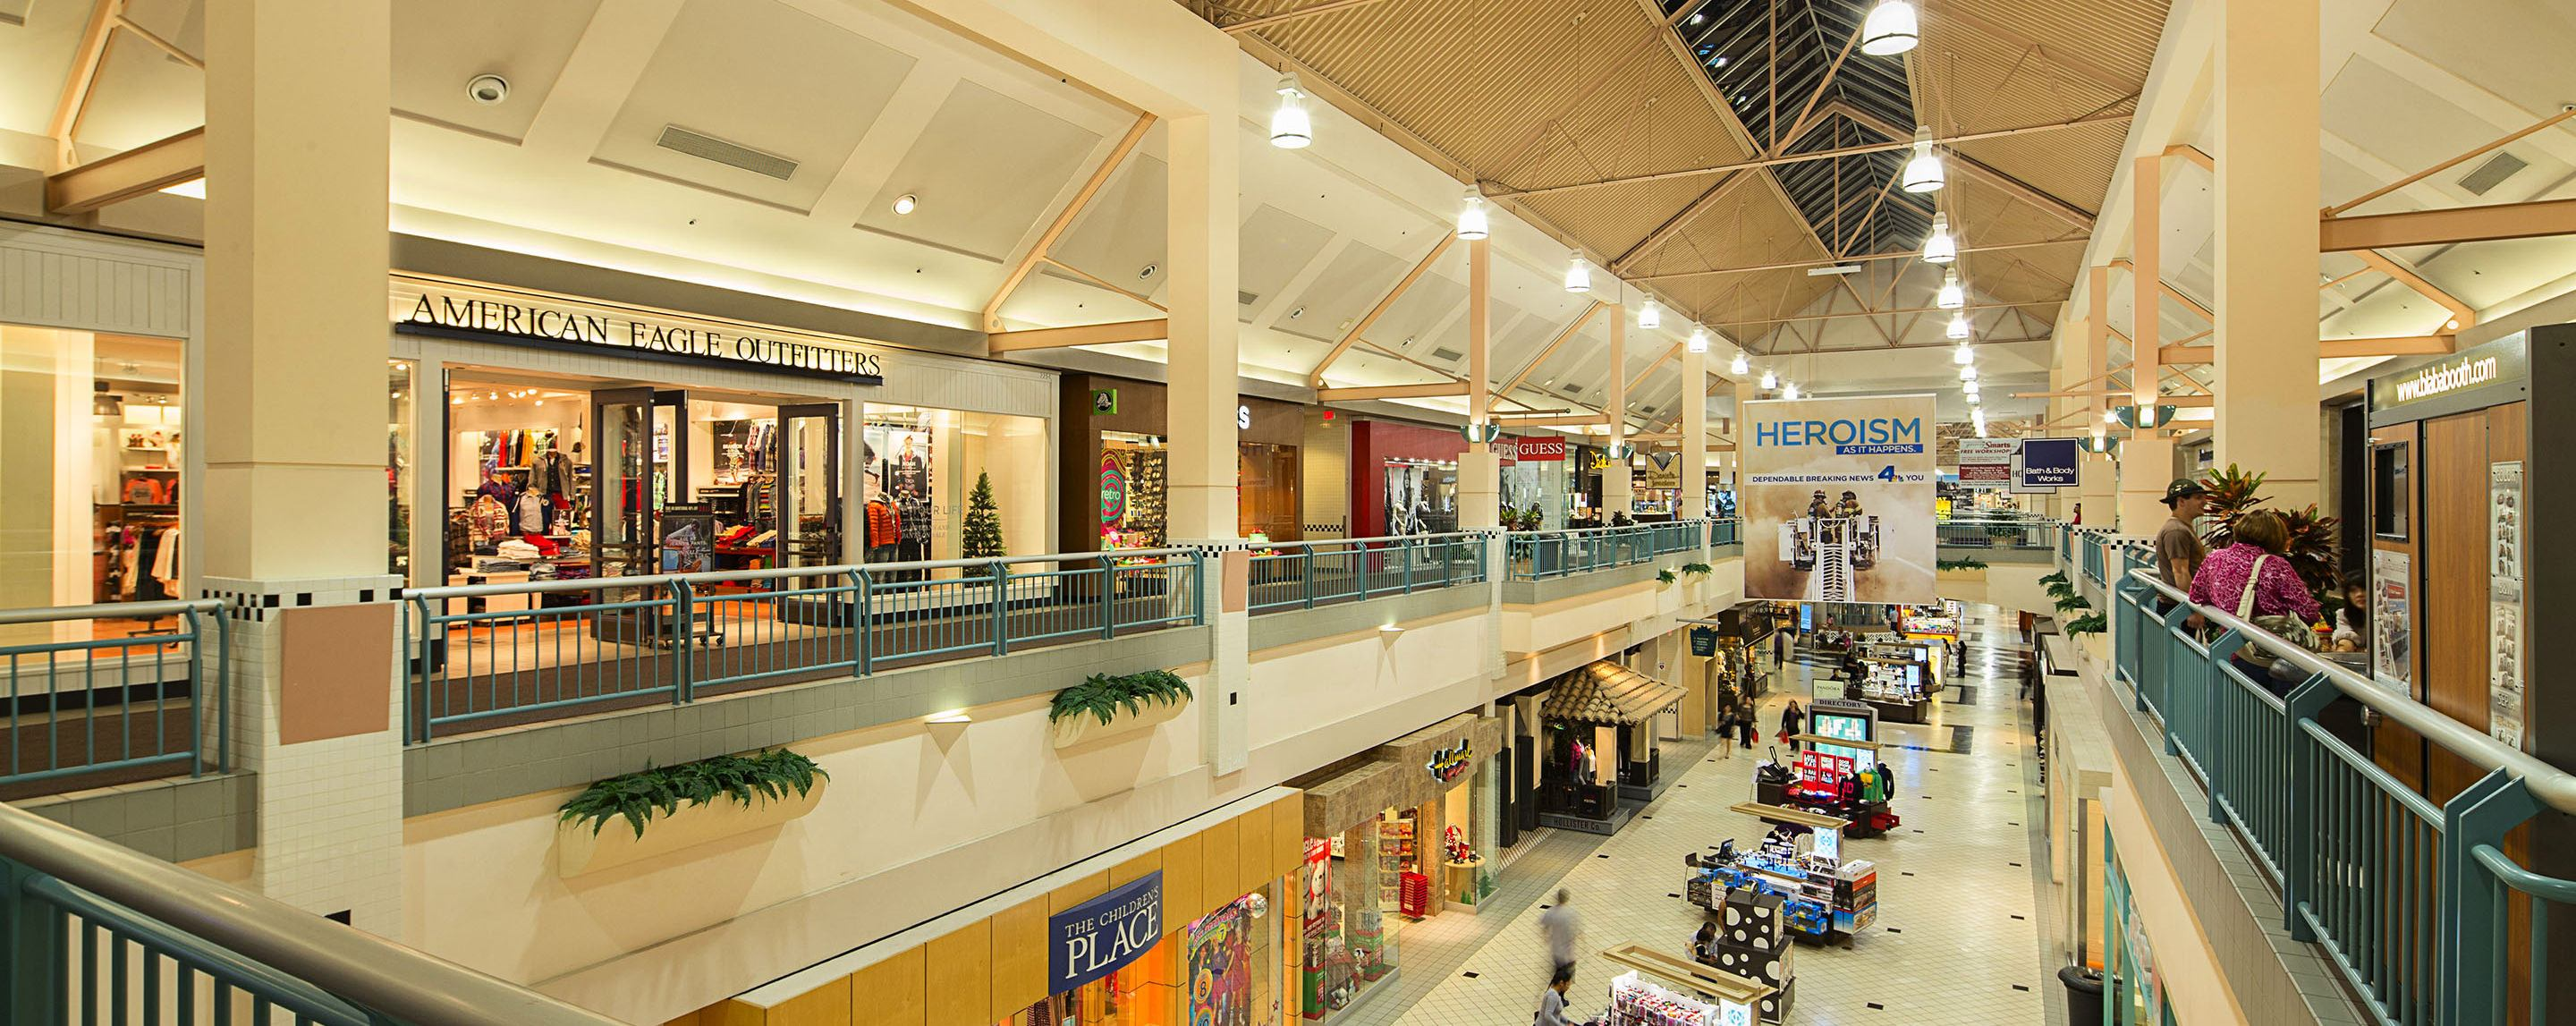 American Eagle Outfitters is on the second floor of the mall, above The Children's Place.